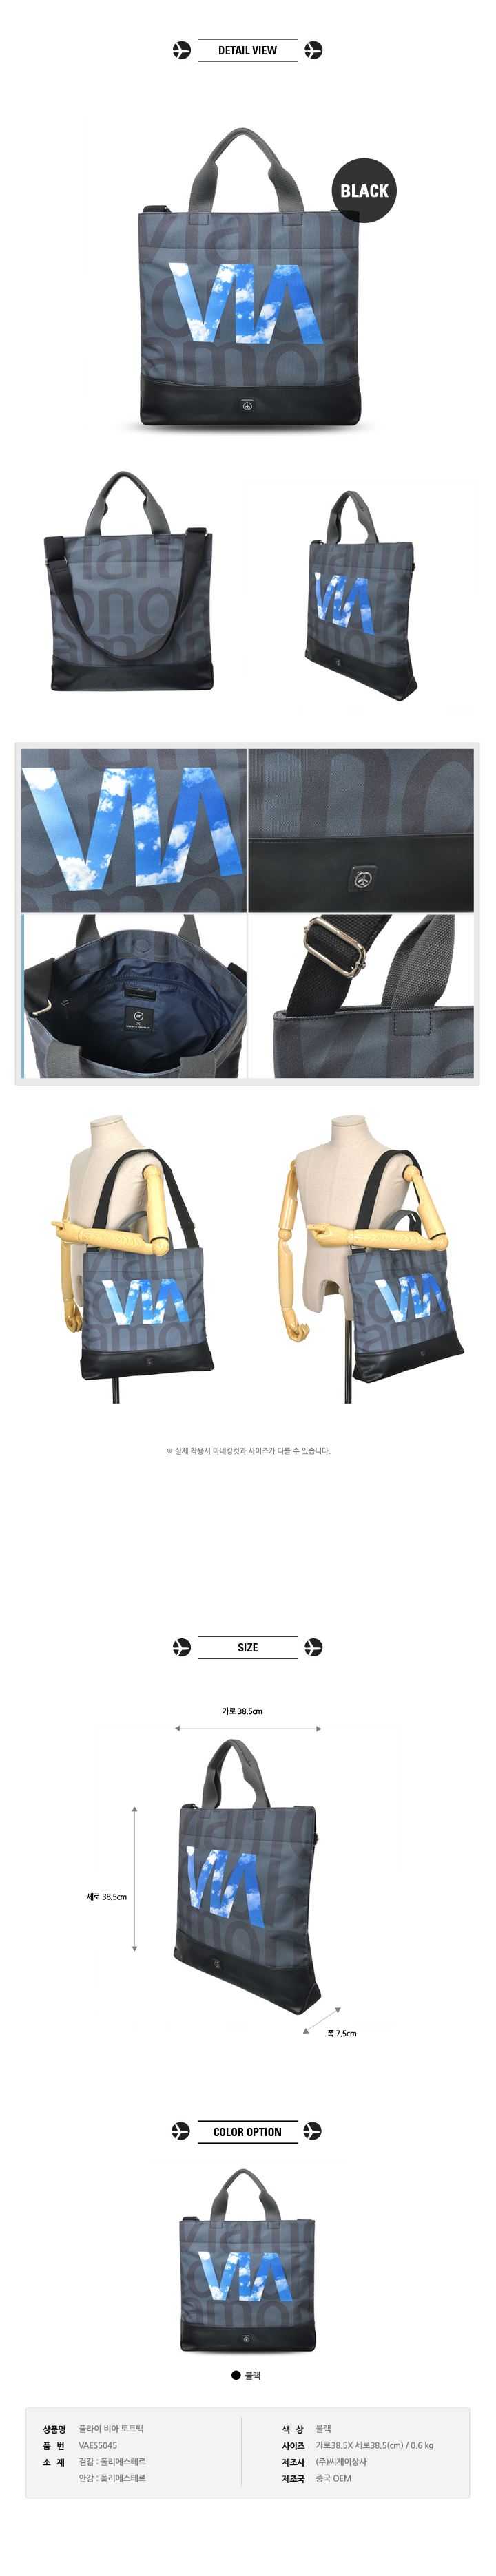 [ VIAMONOH ] FLY VIA TOTE BAG